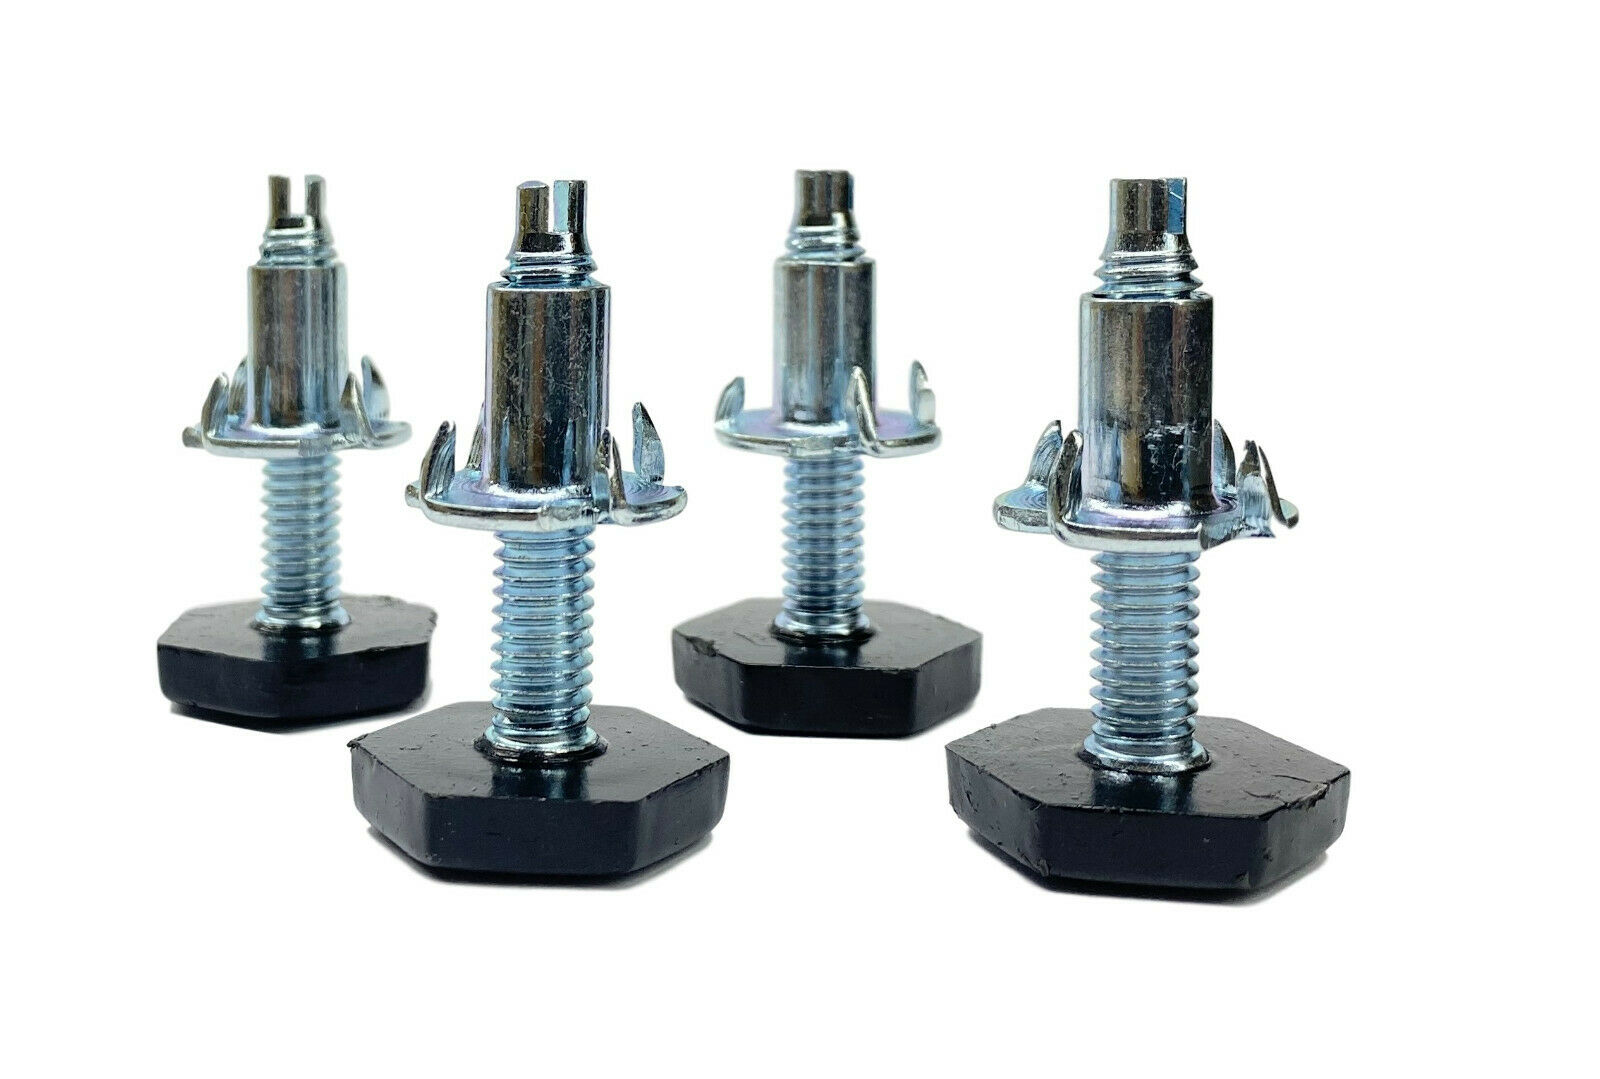 5/16″-18 Nylon Hex Base Furniture Leg Levelers with 4 Prong Tee Nuts – Set of 4 Furniture